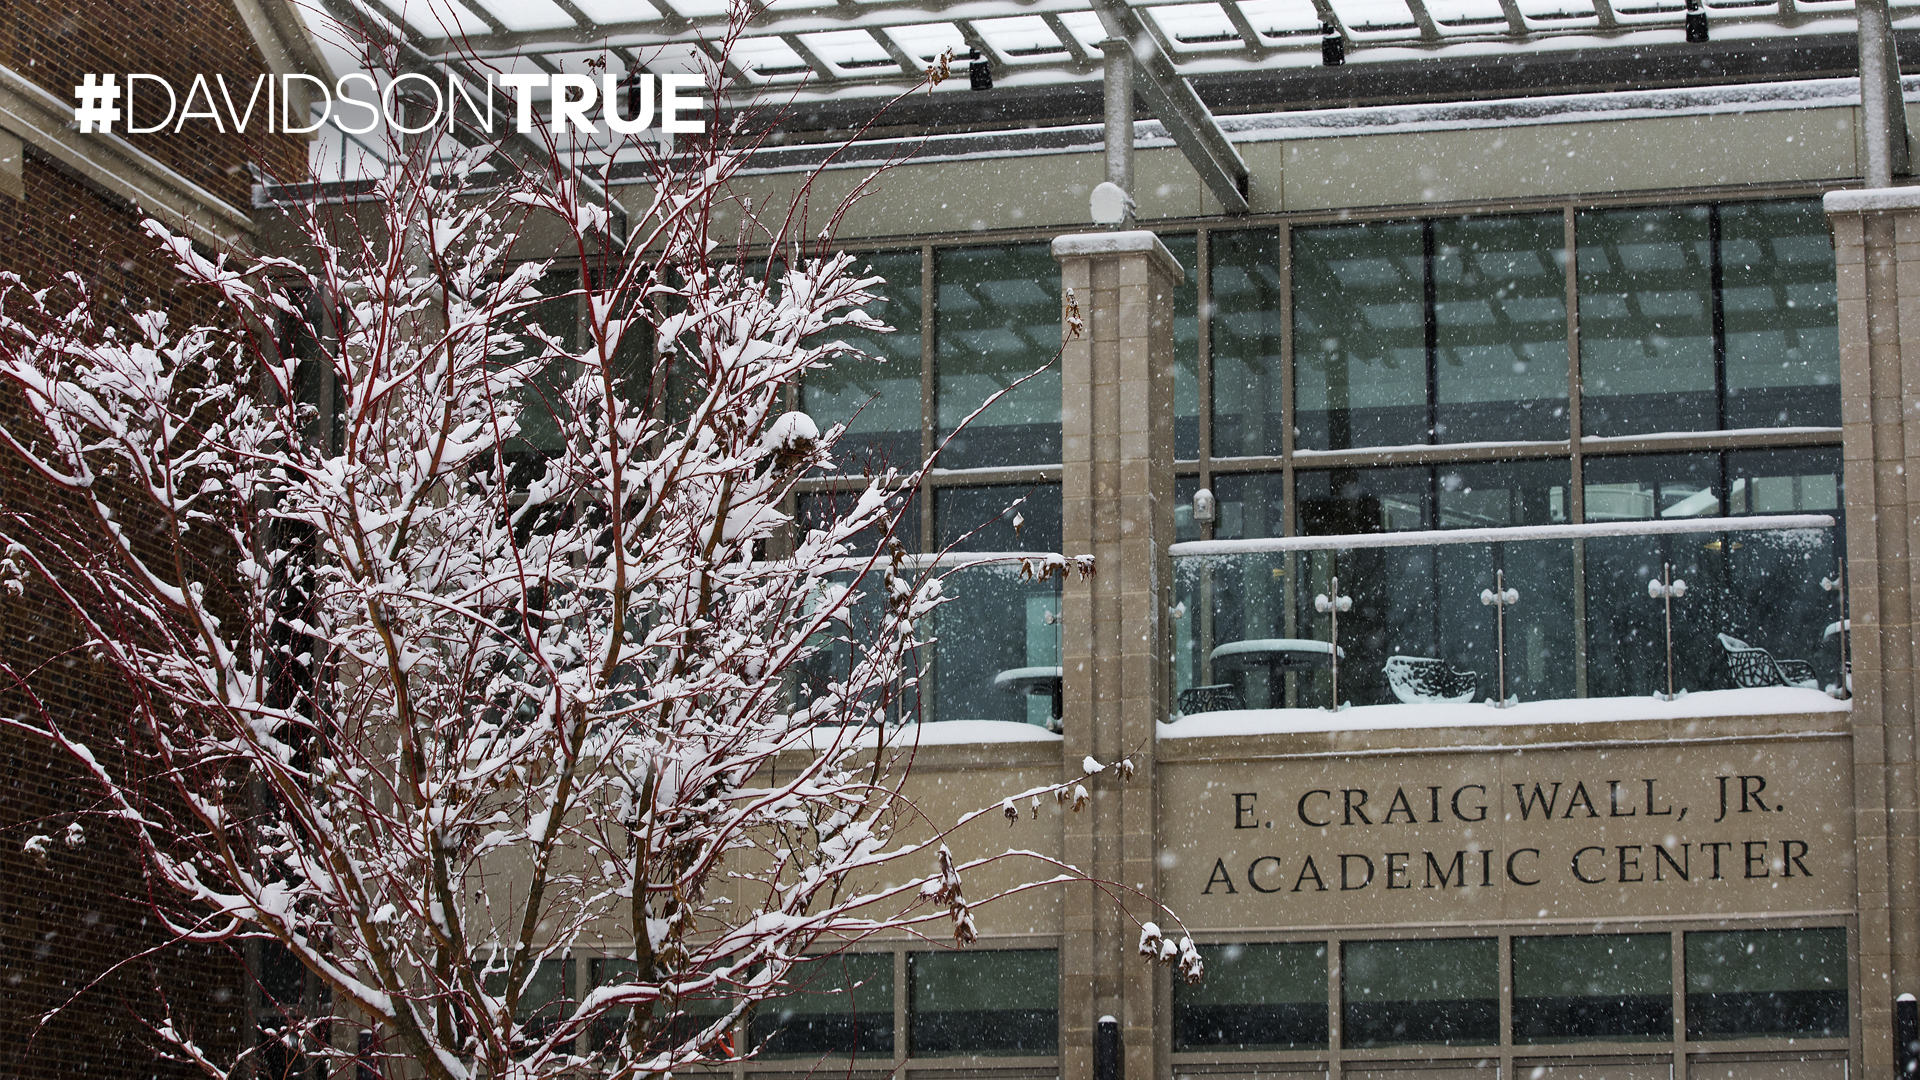 Wall Building and snowy tree with Davidson True wordmark